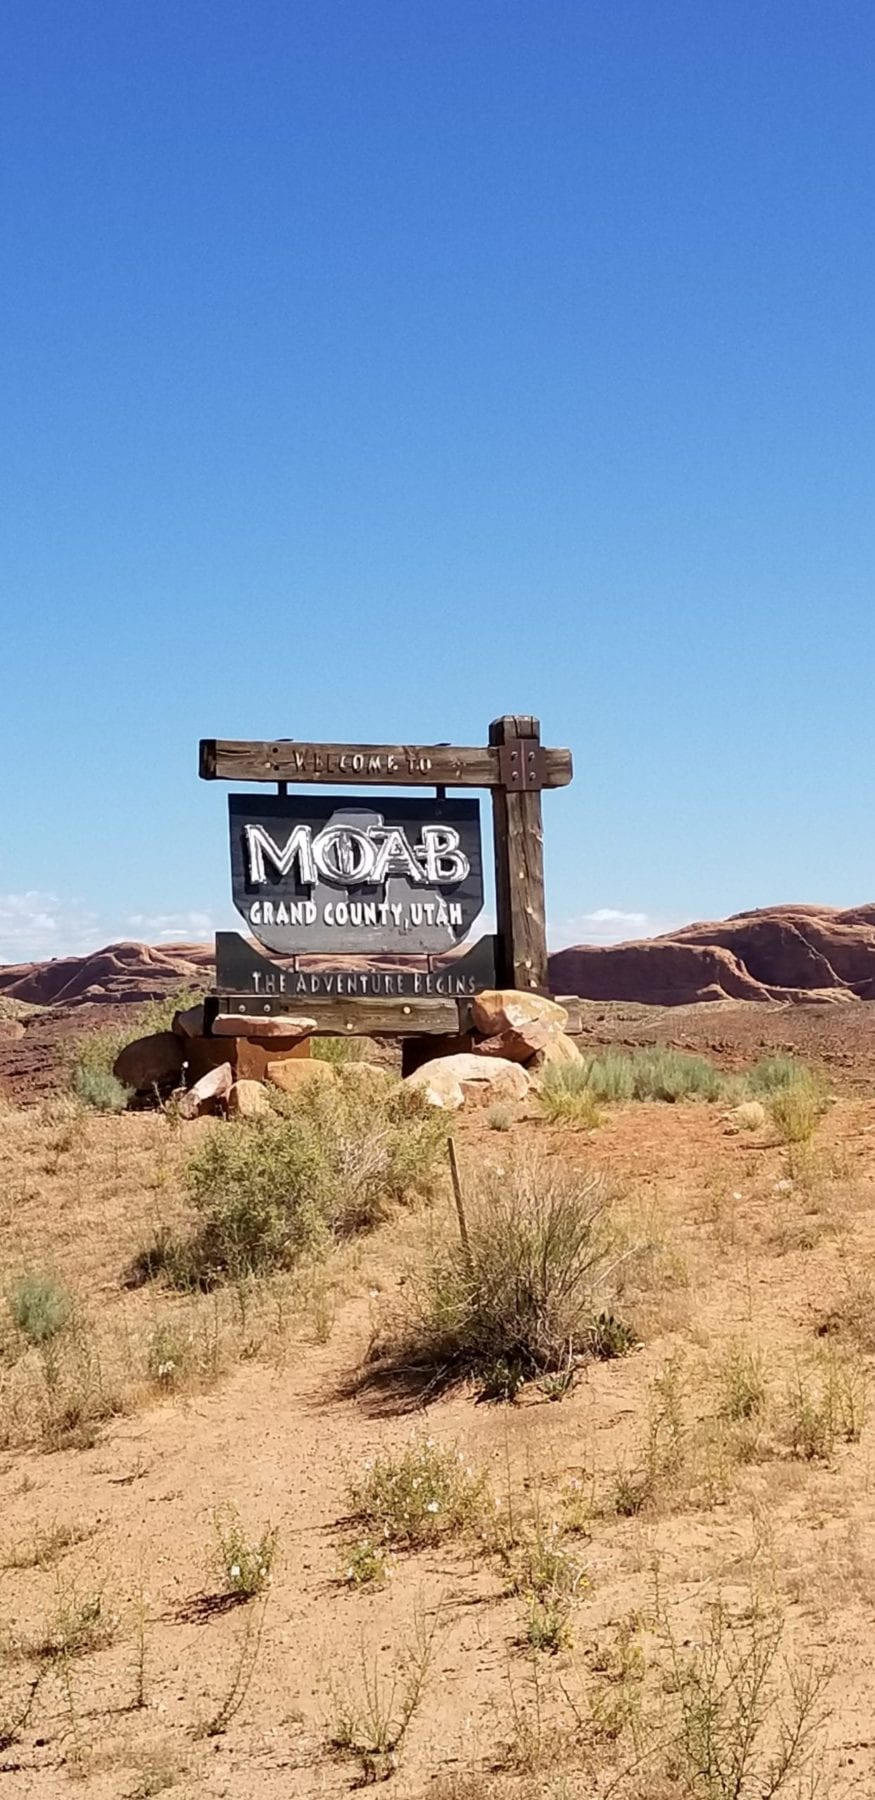 Planning a trip to Moab -Welcome to Moab sign